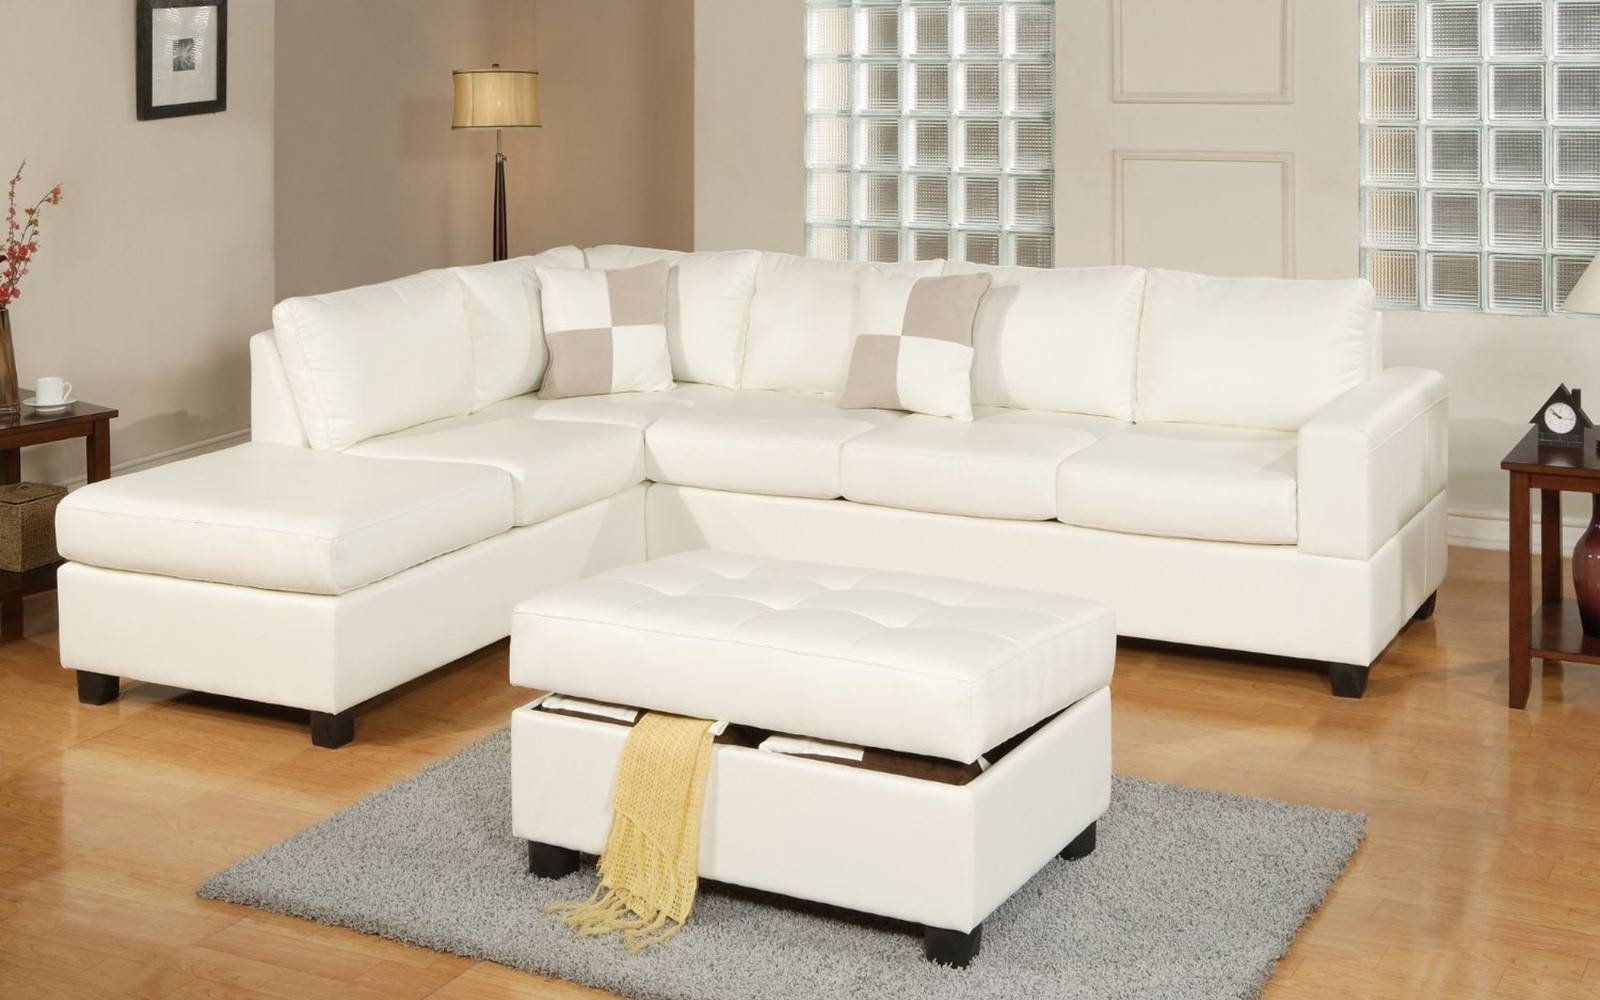 Sectional Sofas And Sectional Couches – Walmart Pertaining To Colorful Sectional Sofas (View 22 of 30)